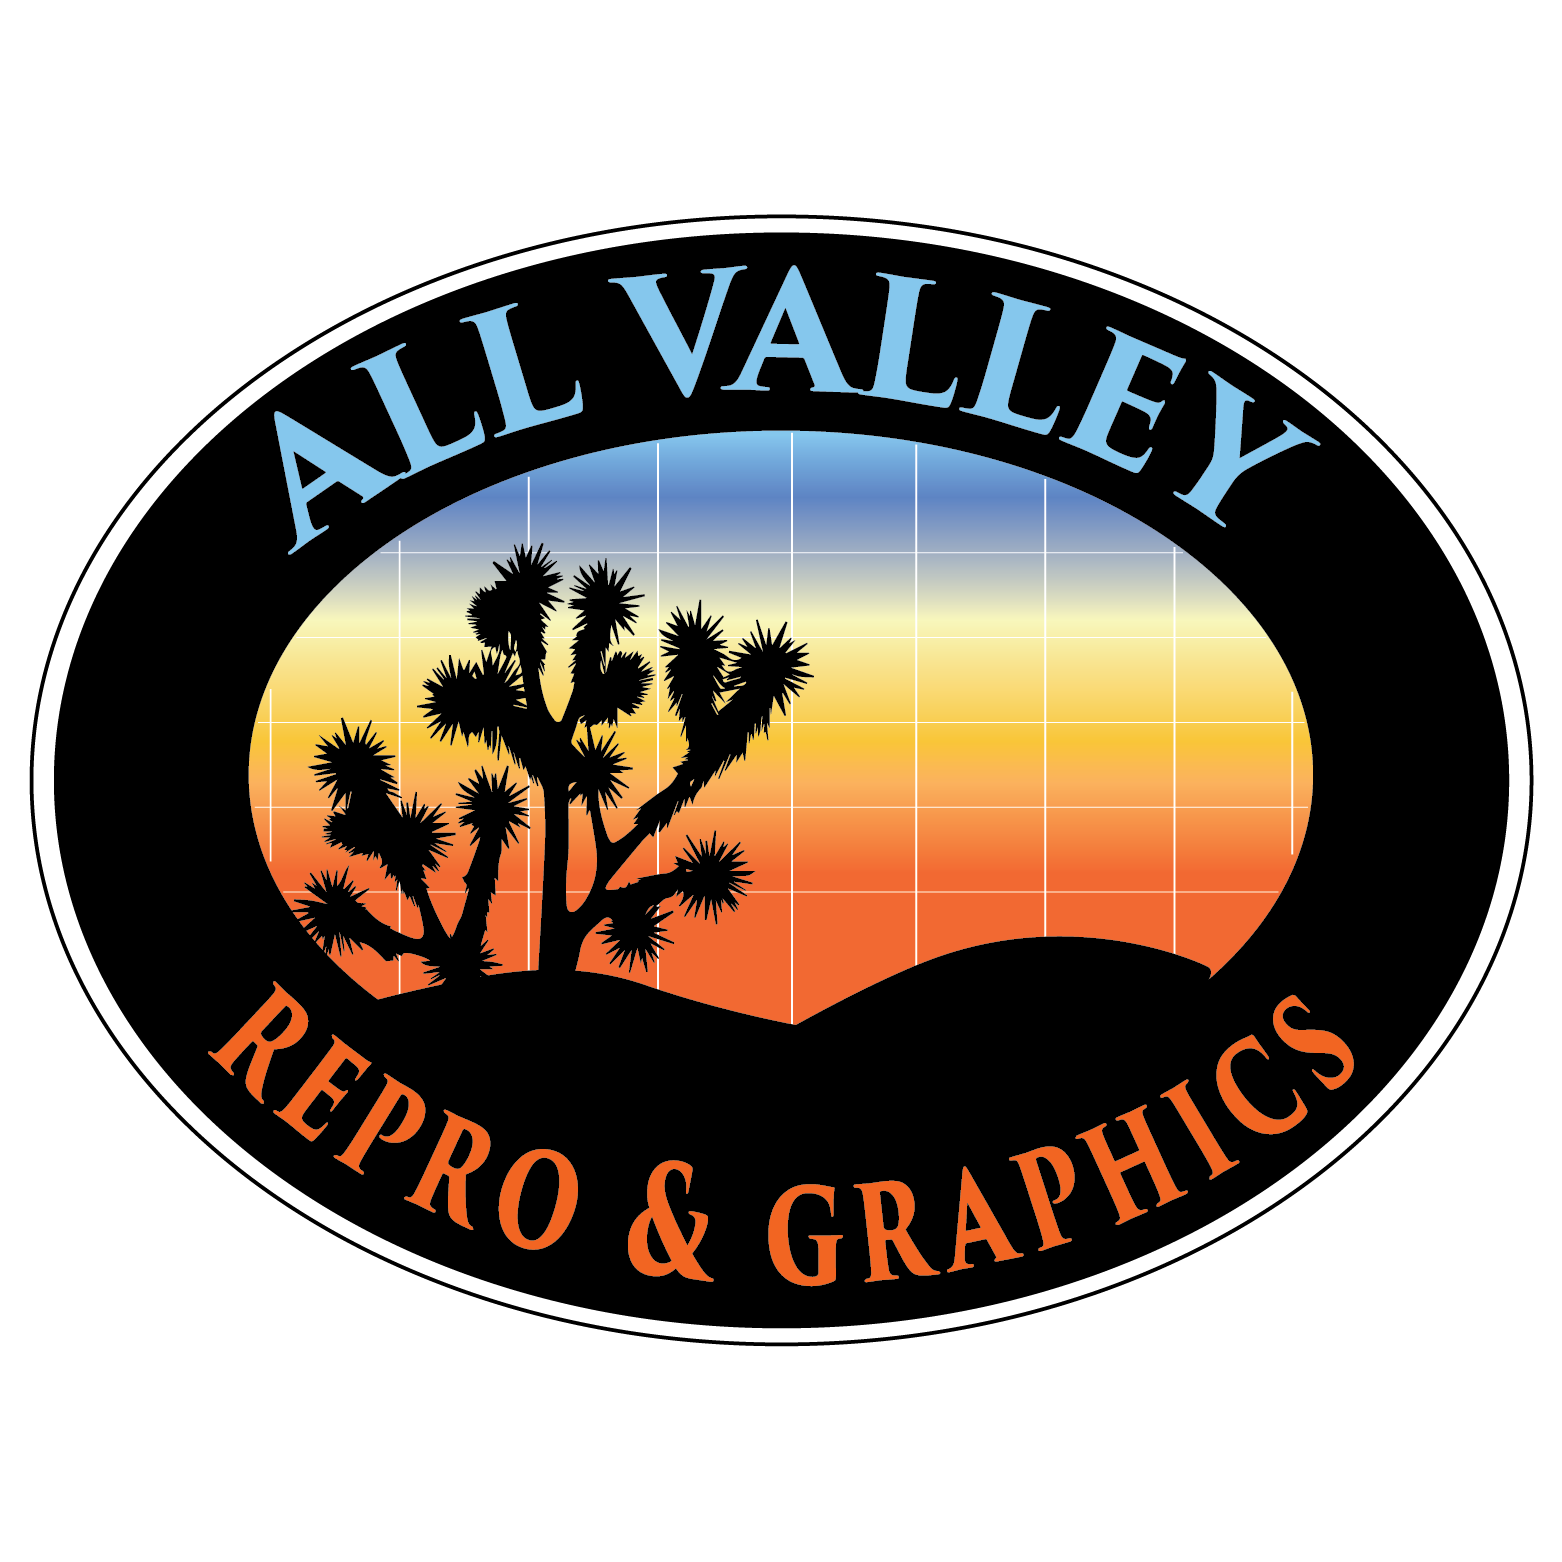 All Valley Repro and Graphics